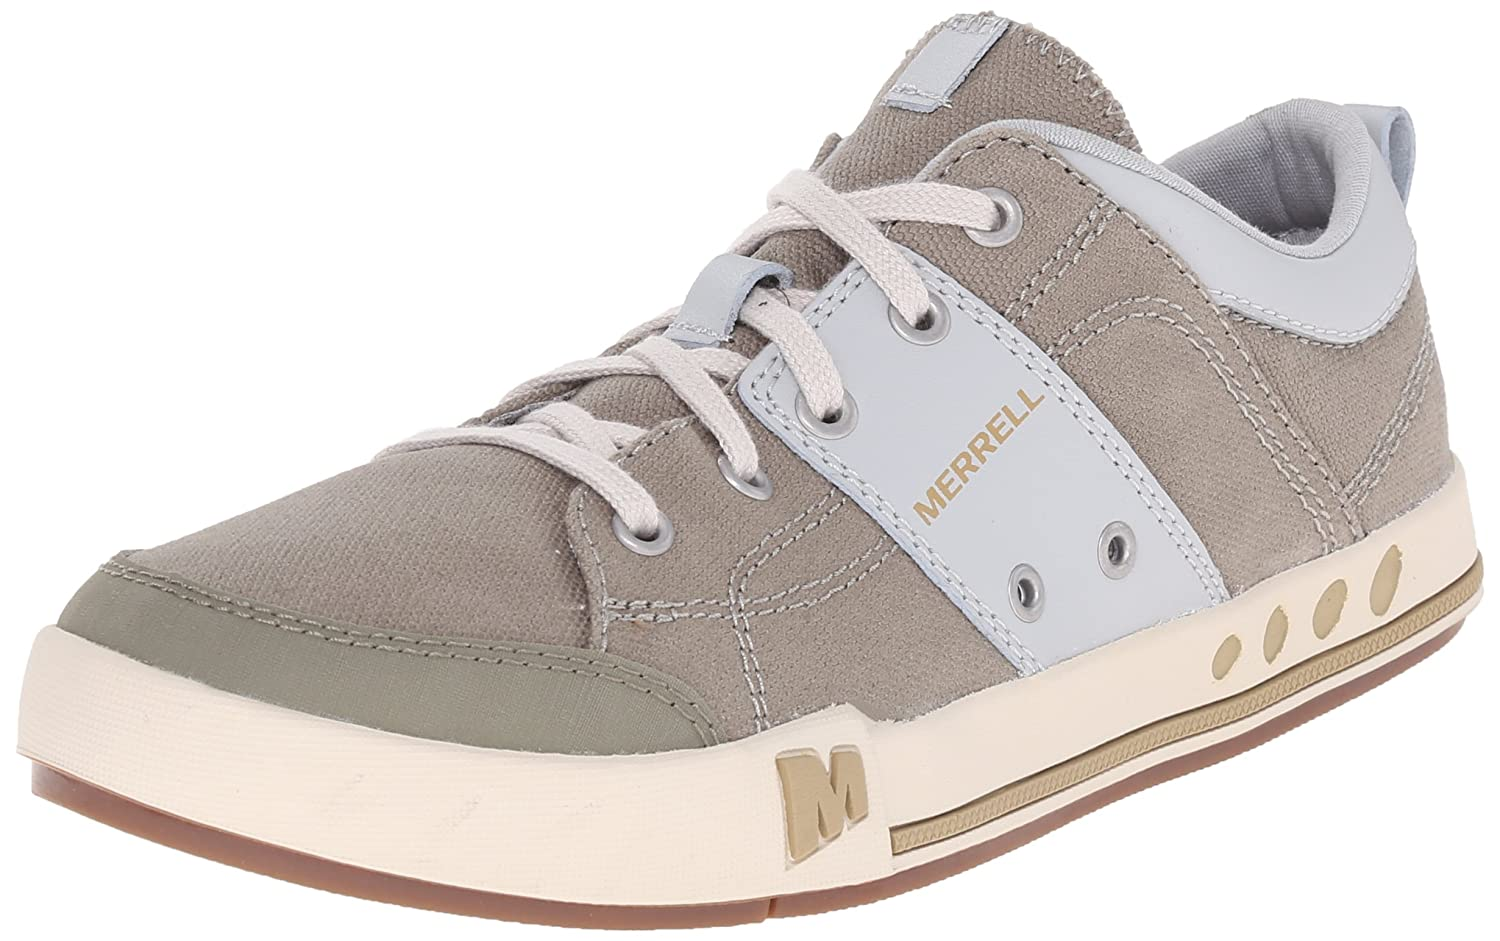 0ee5d4156633 Merrell Women s Rant Casual Lace-up Shoe Black 5 B(M) US  Buy Online at Low  Prices in India - Amazon.in